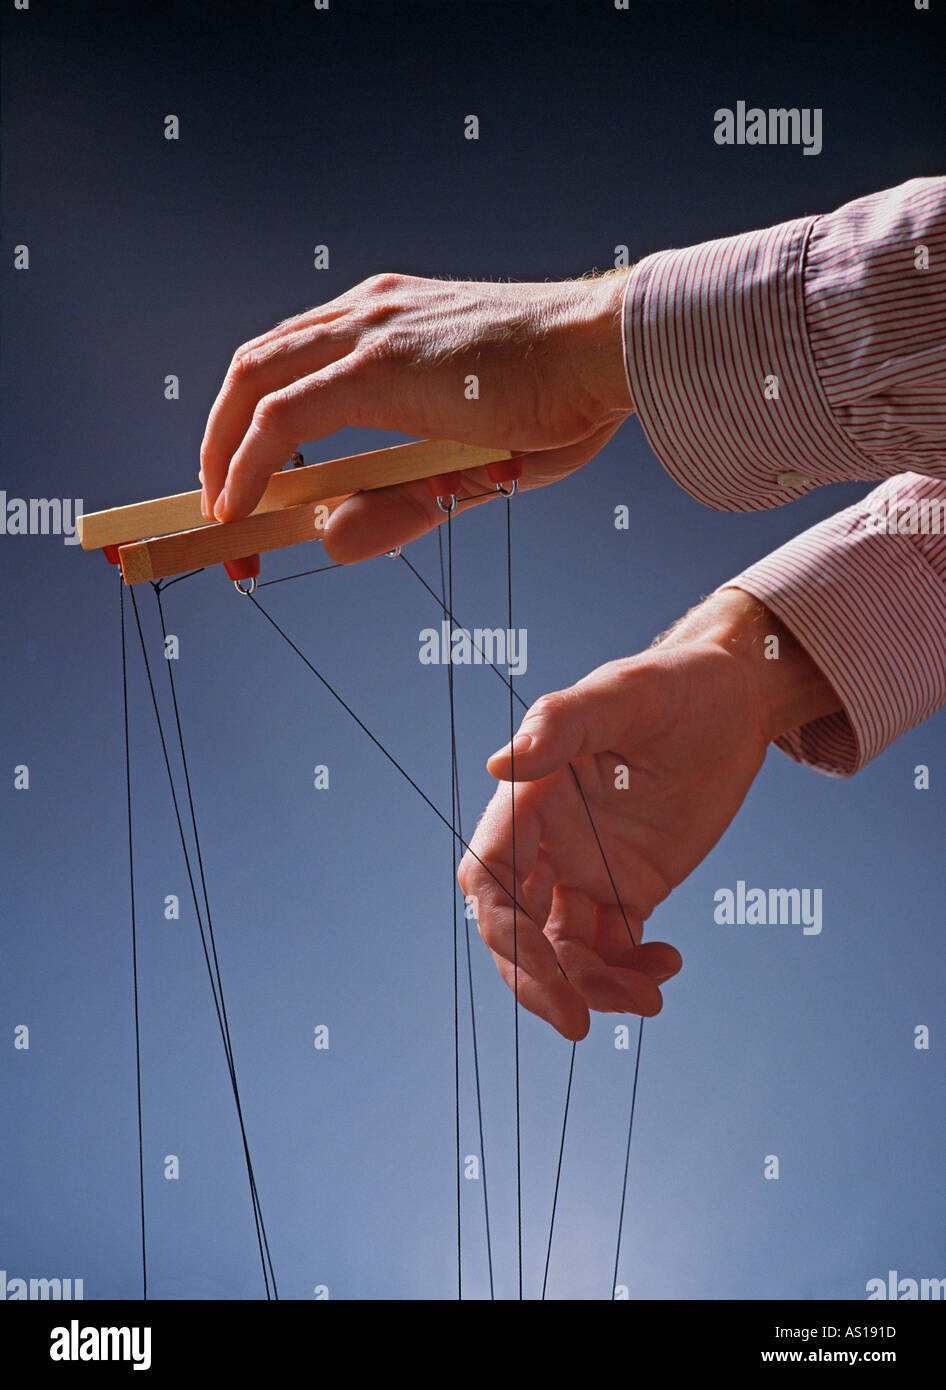 Controlling and manipulating Hands of corporate puppeteer - Stock Image